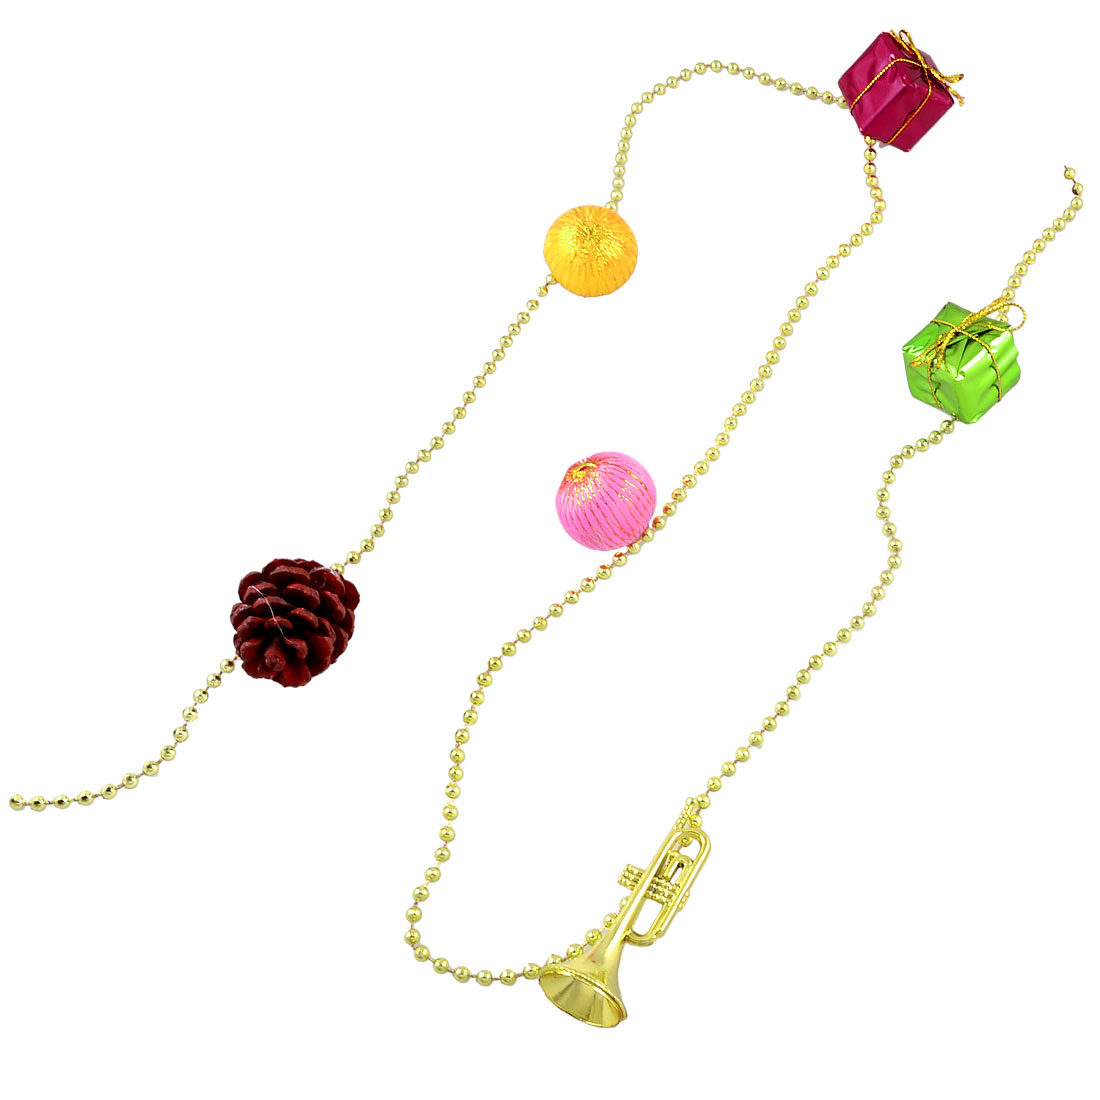 Colorful Xmas Gift Balls Trumpet Pine Nut Christmas Tree Hanging Ornament Chain